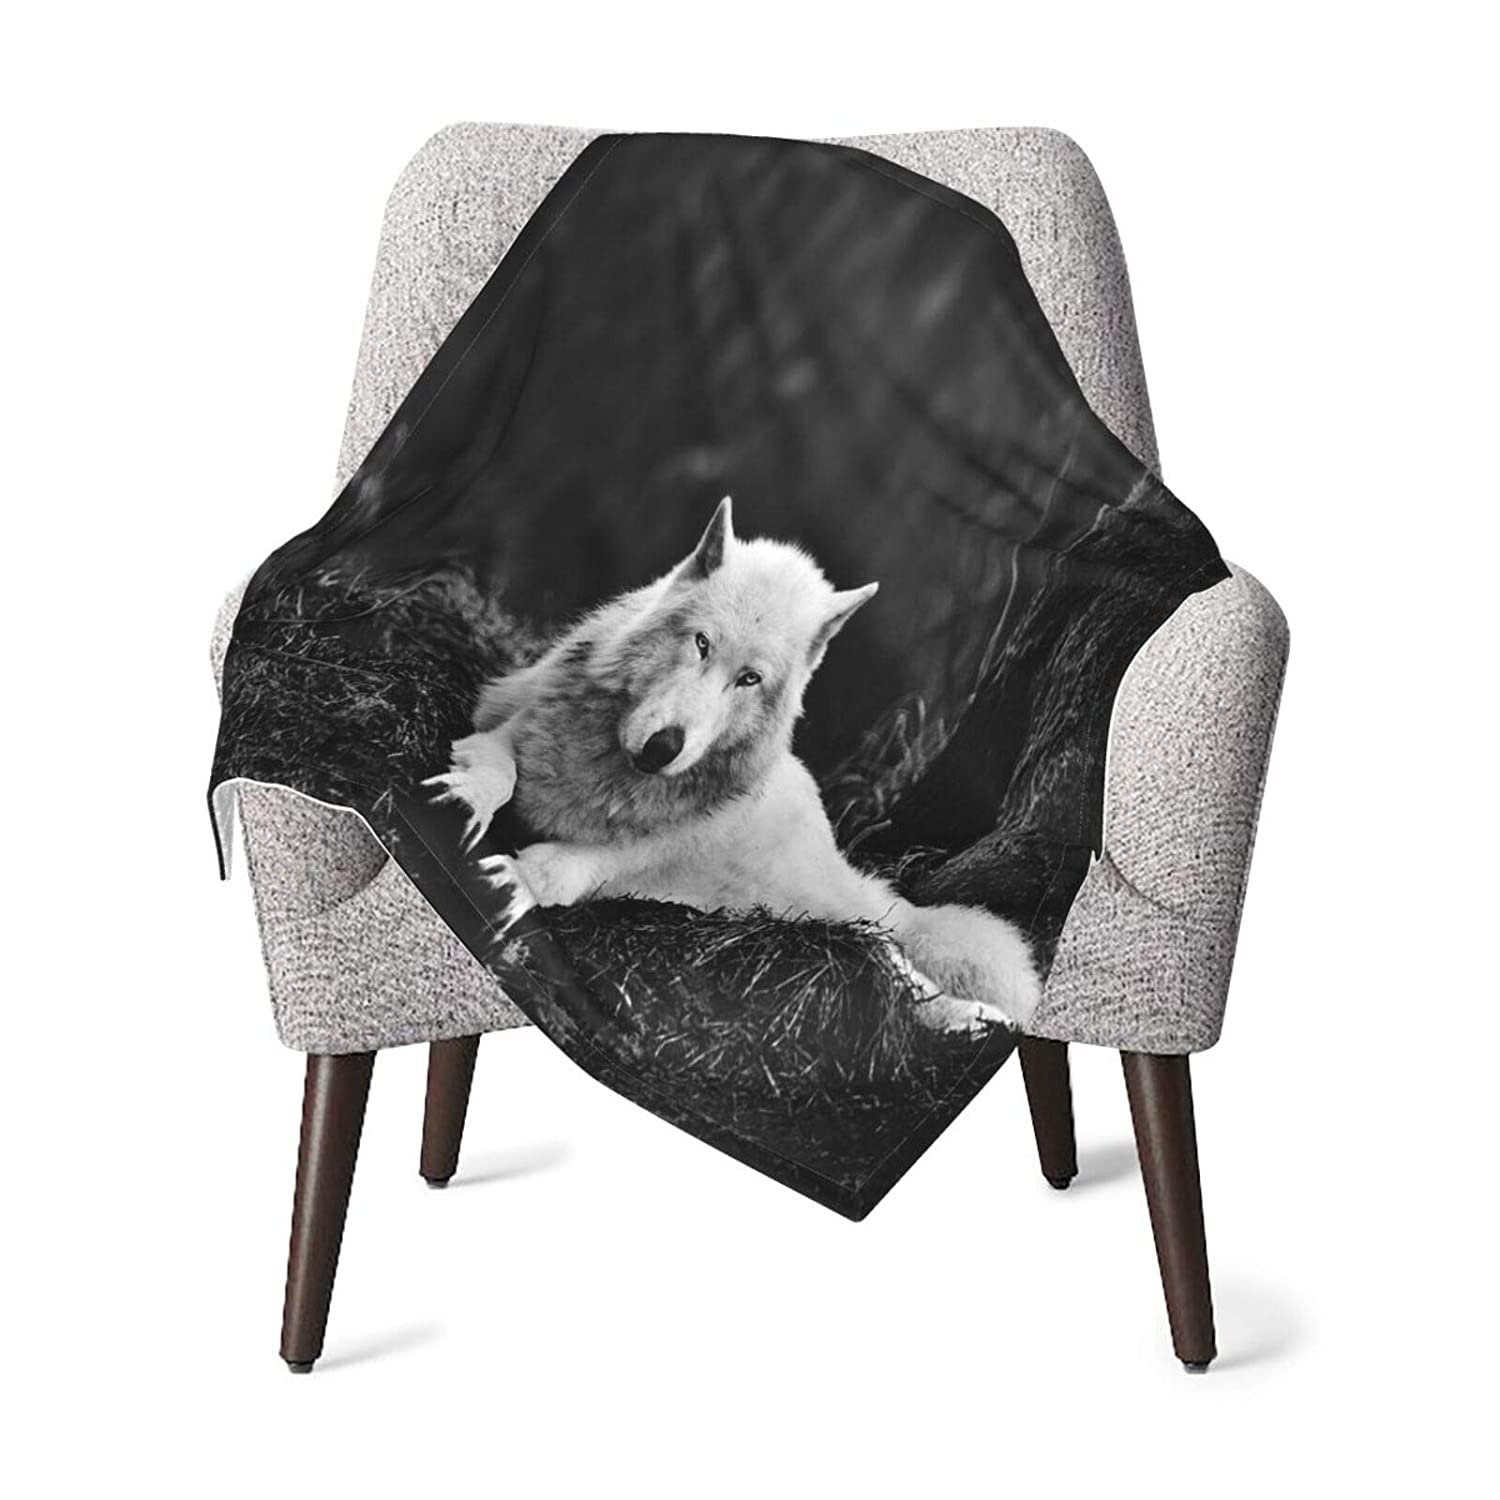 Carwayii Baby Blanket Wolf Wall Decor Forest Lone Wolf Soft Newborn Blanket Receiving Blanket Skin-Friendly Swaddling Blankets Durable Toddler Sheets Thick Shower Gifts for Crib Outdoor